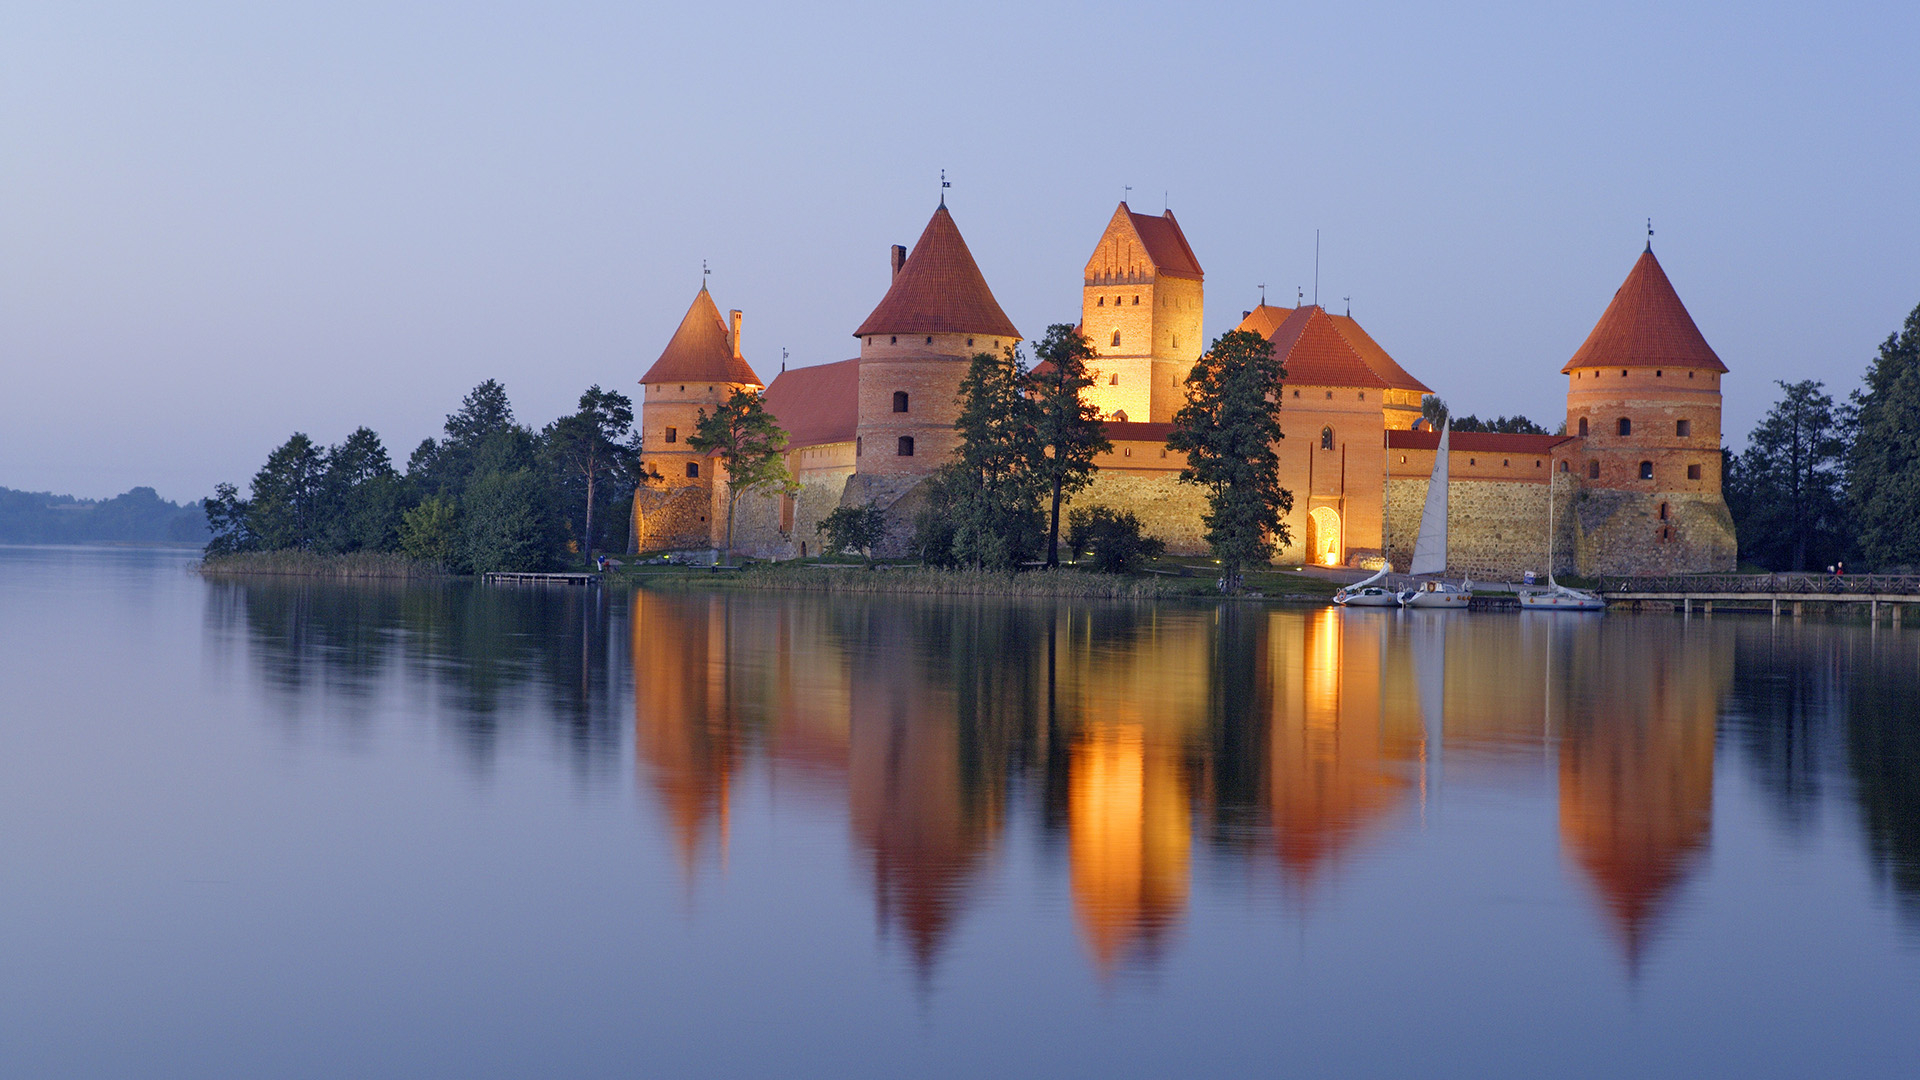 3 trakai island castle hd wallpapers background images for Immagini hd desktop